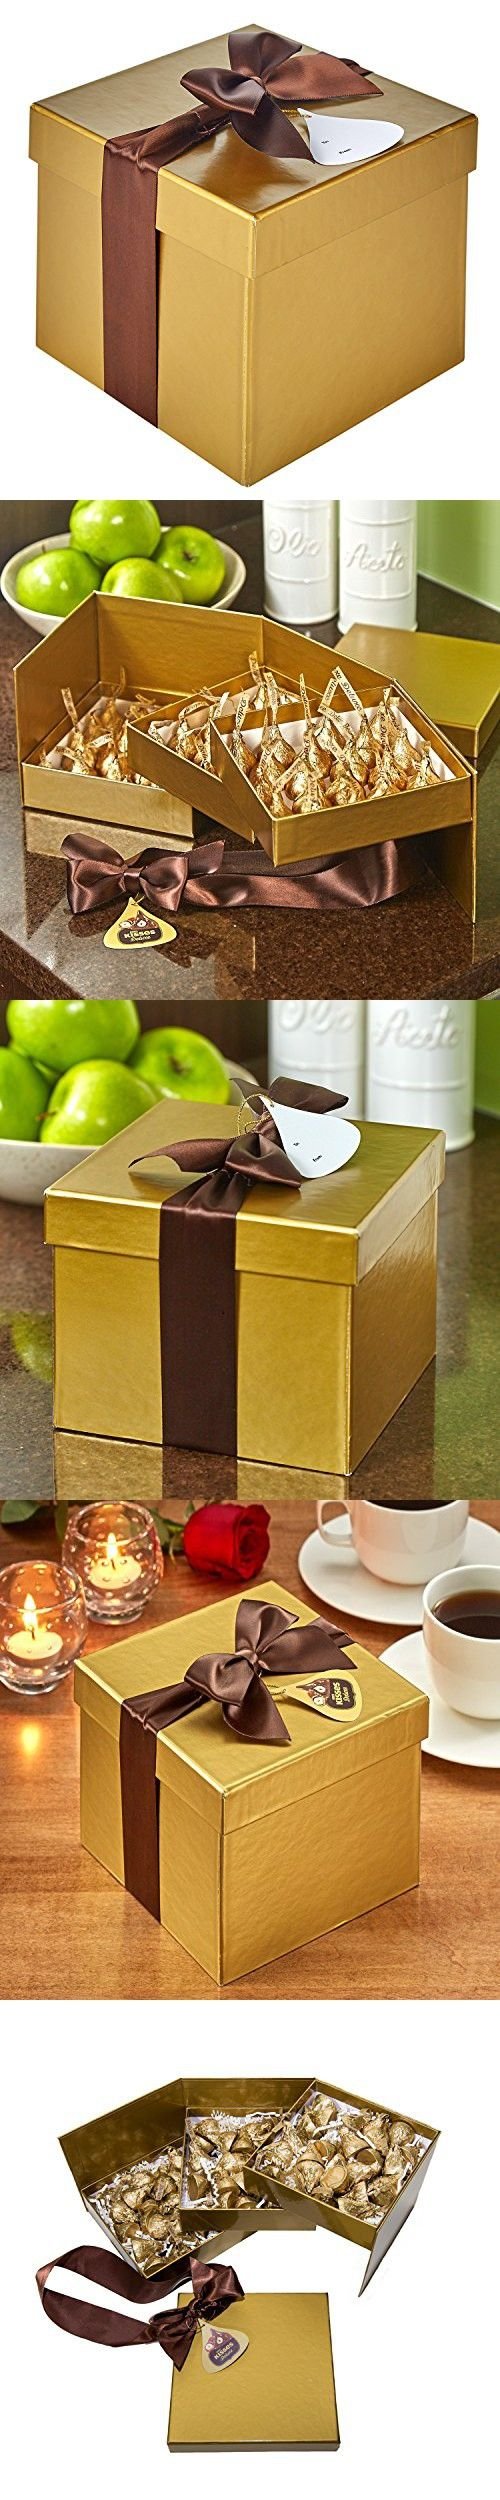 KISSES Deluxe Chocolates Gift Box, 21.7 Ounce